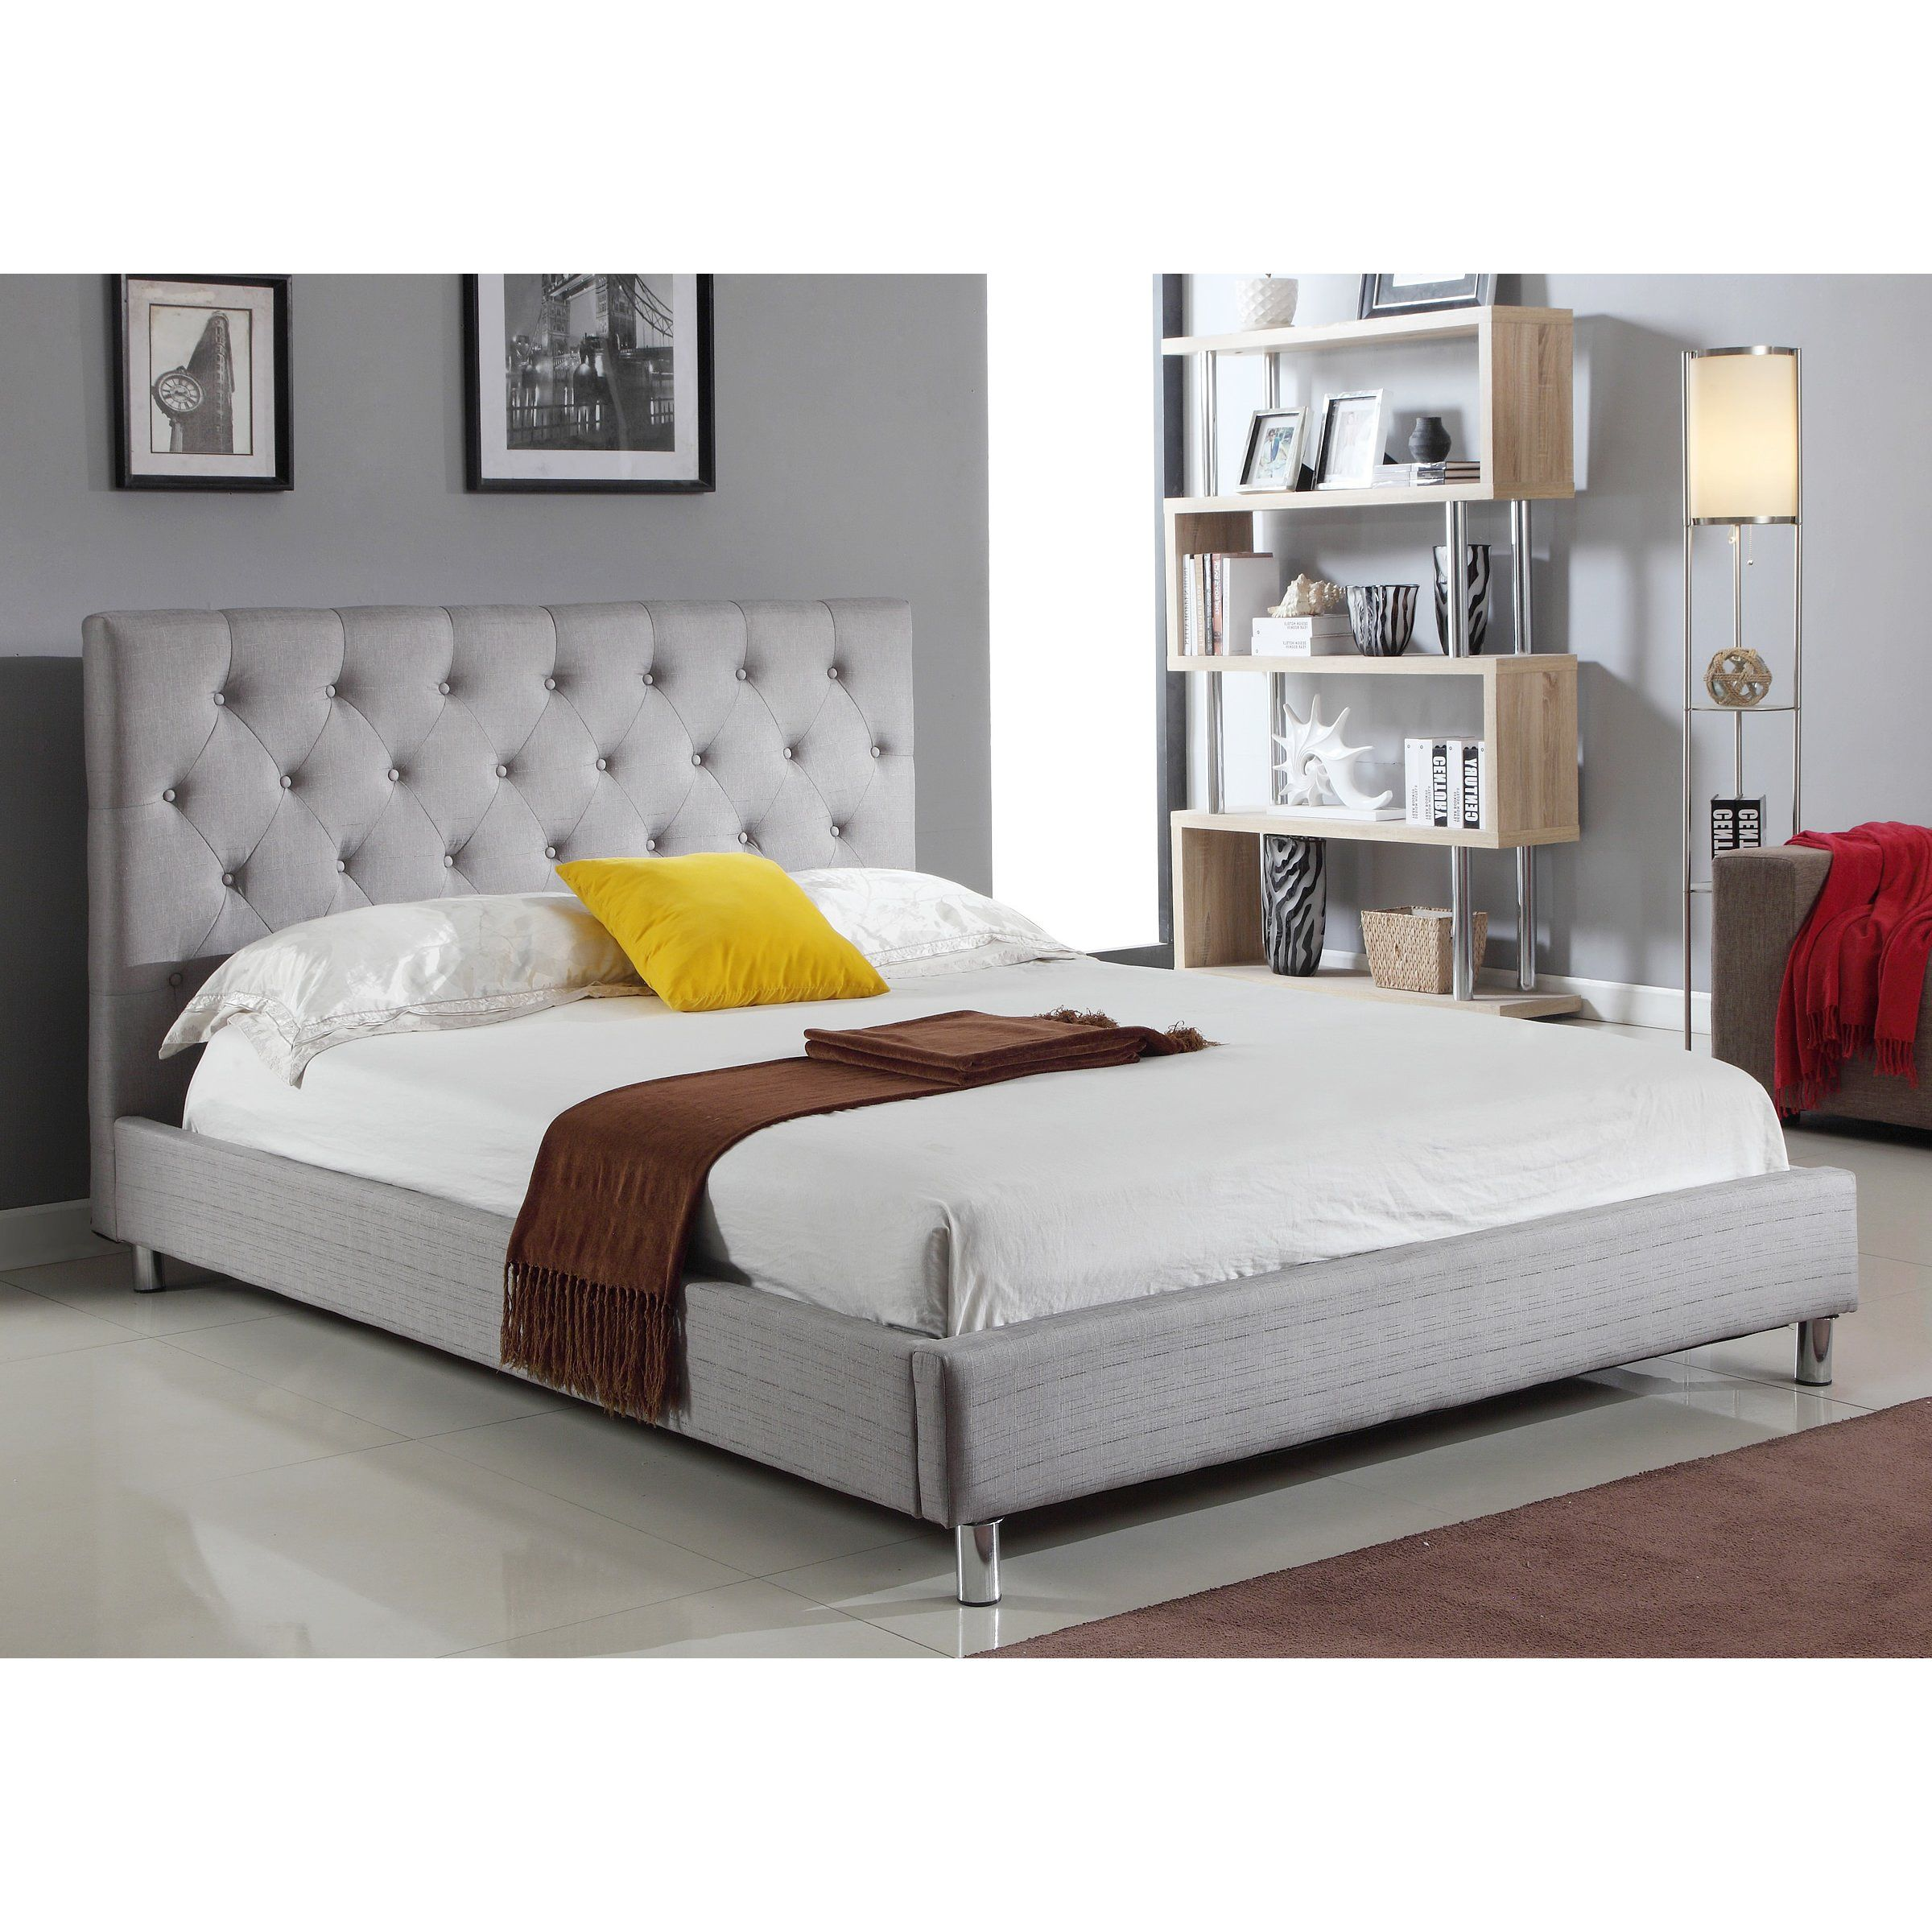 attwater upholstered platform bed http www dealepic com post type